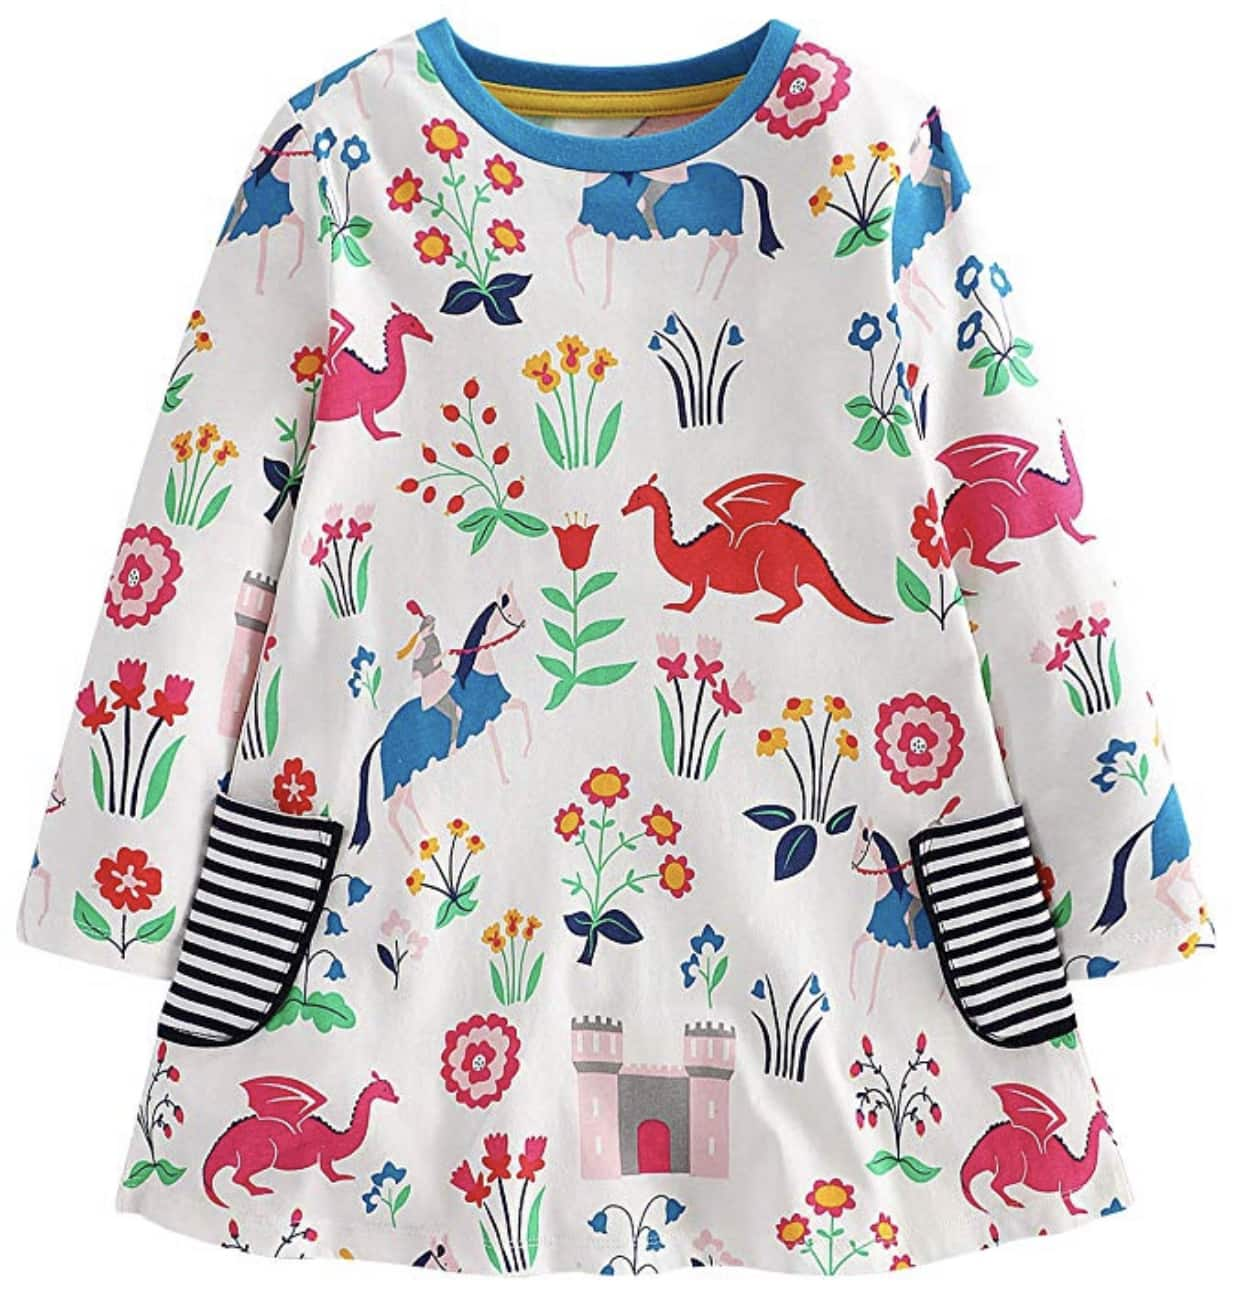 5678b57e4cbc0 Girls Cotton Casual Longsleeve Cartoon Stripe Dresses from $6.99 ...